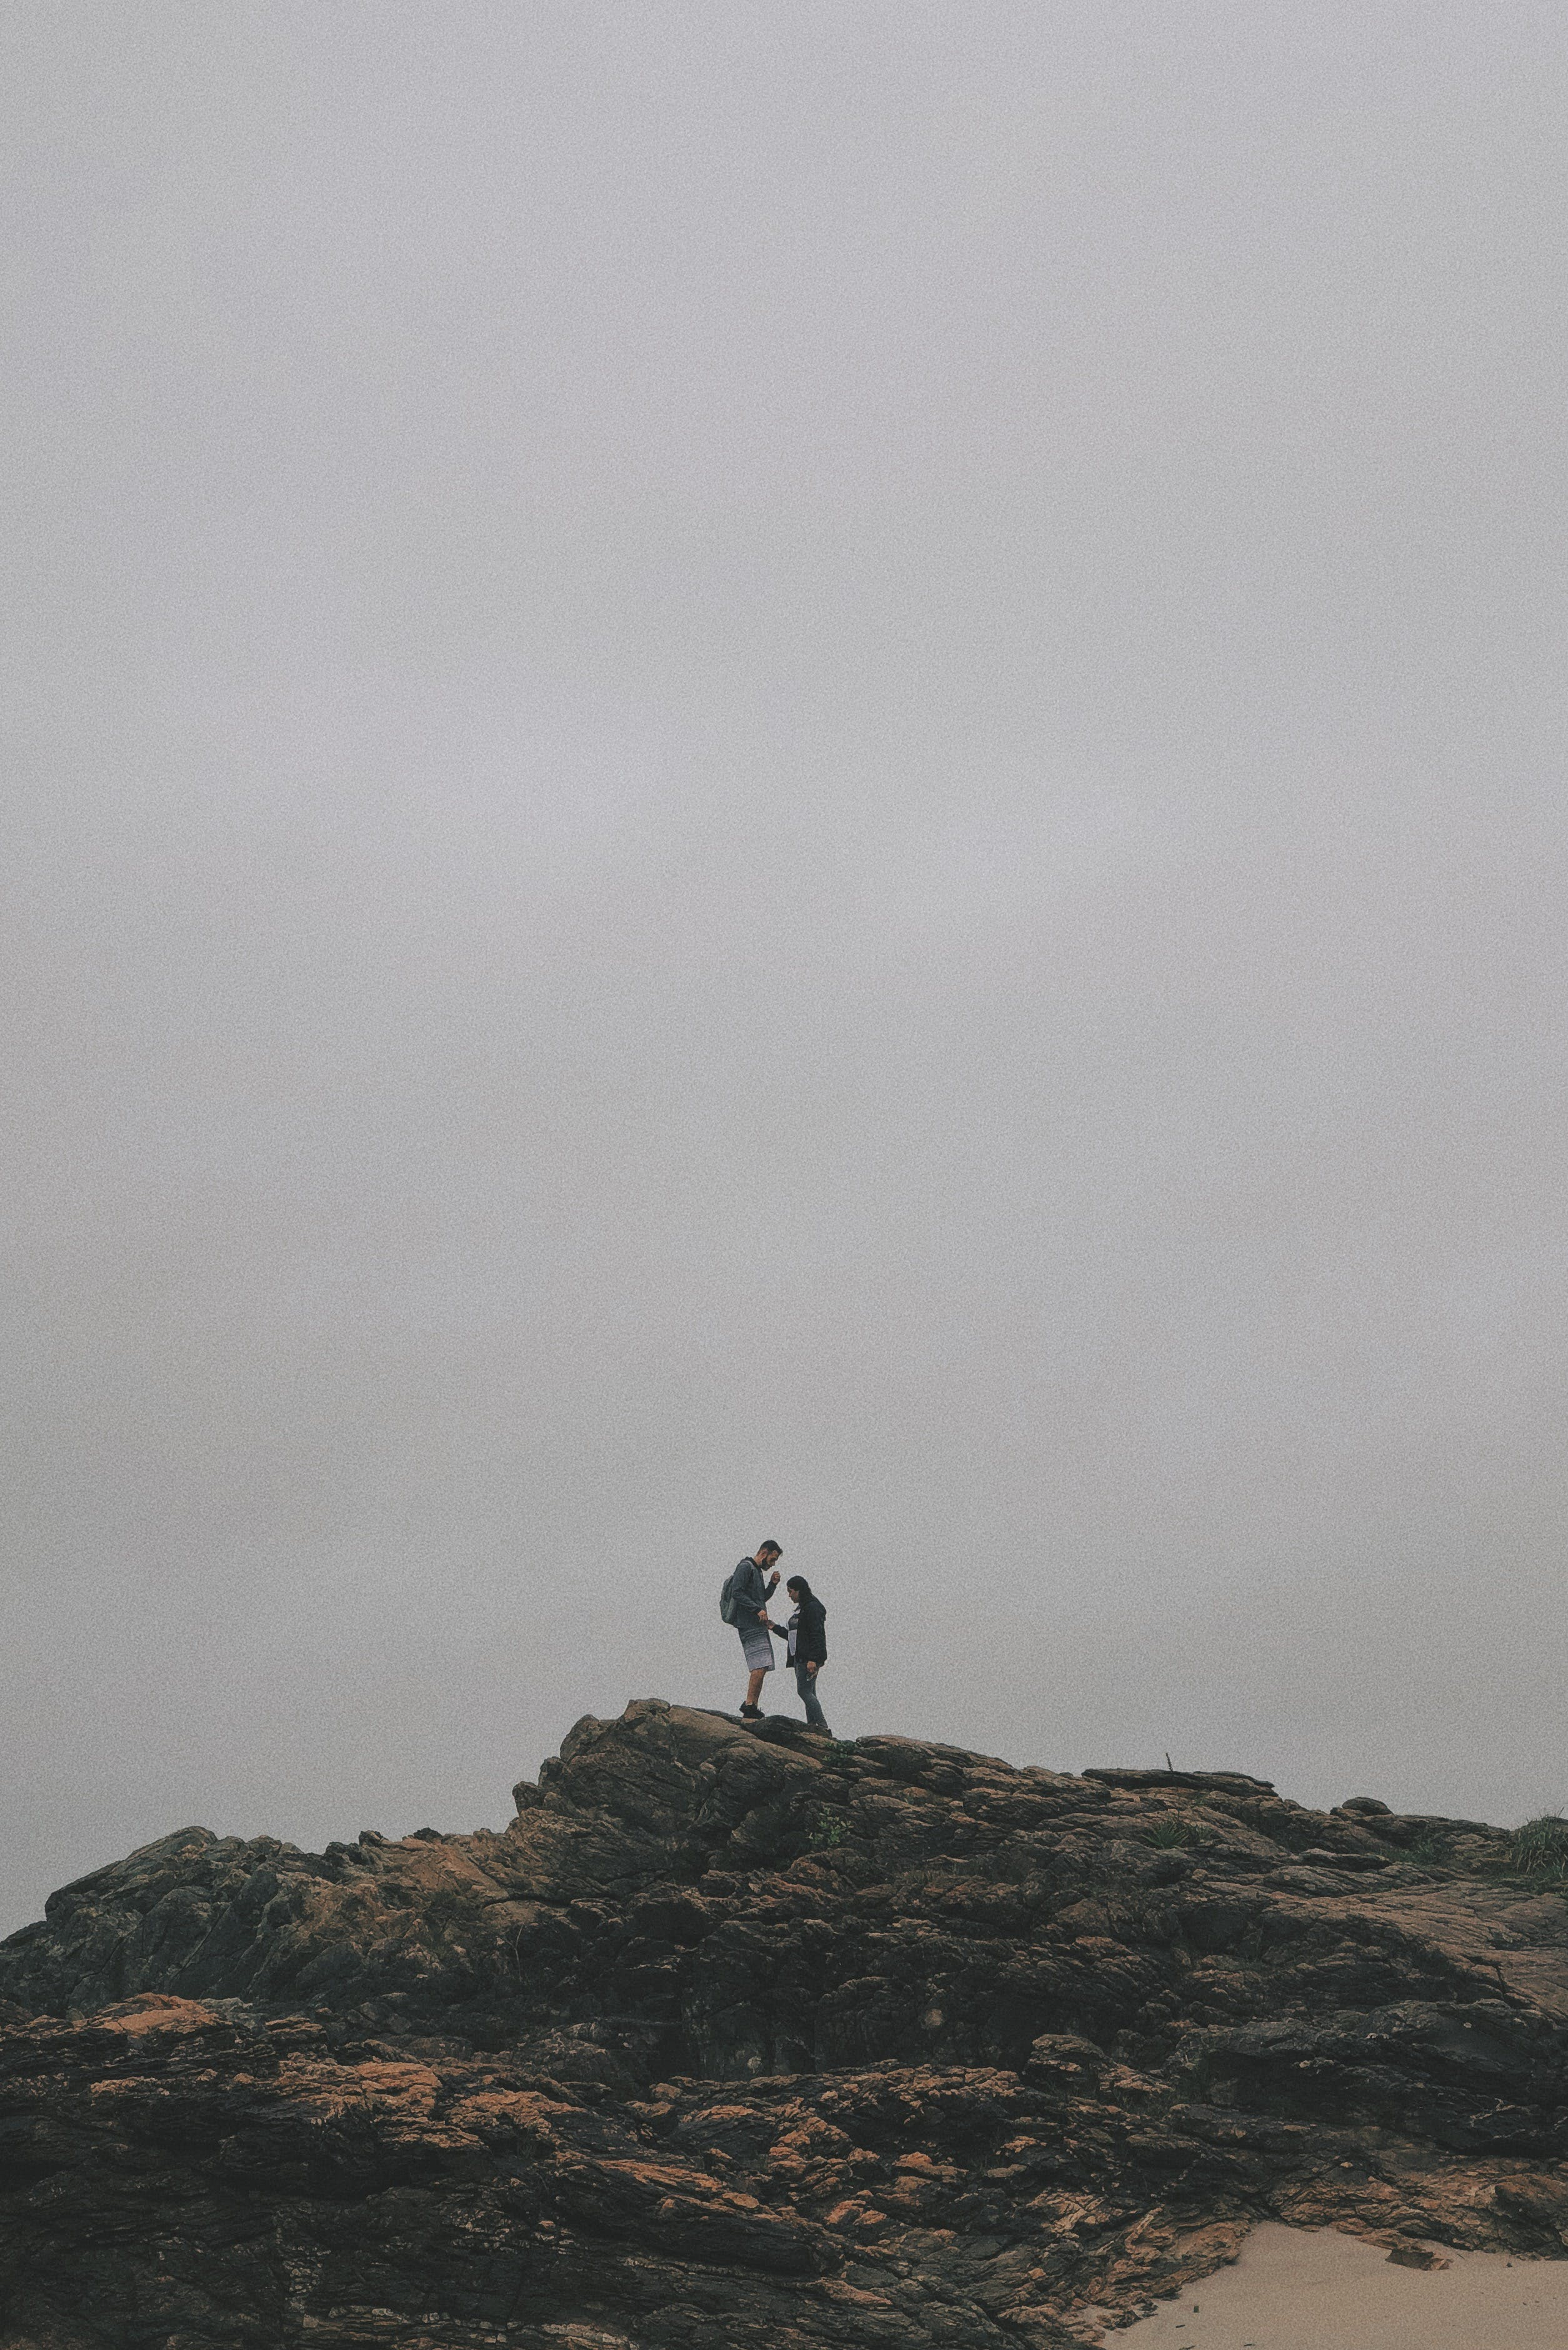 Man and Woman Standing on Rock Under White Sky